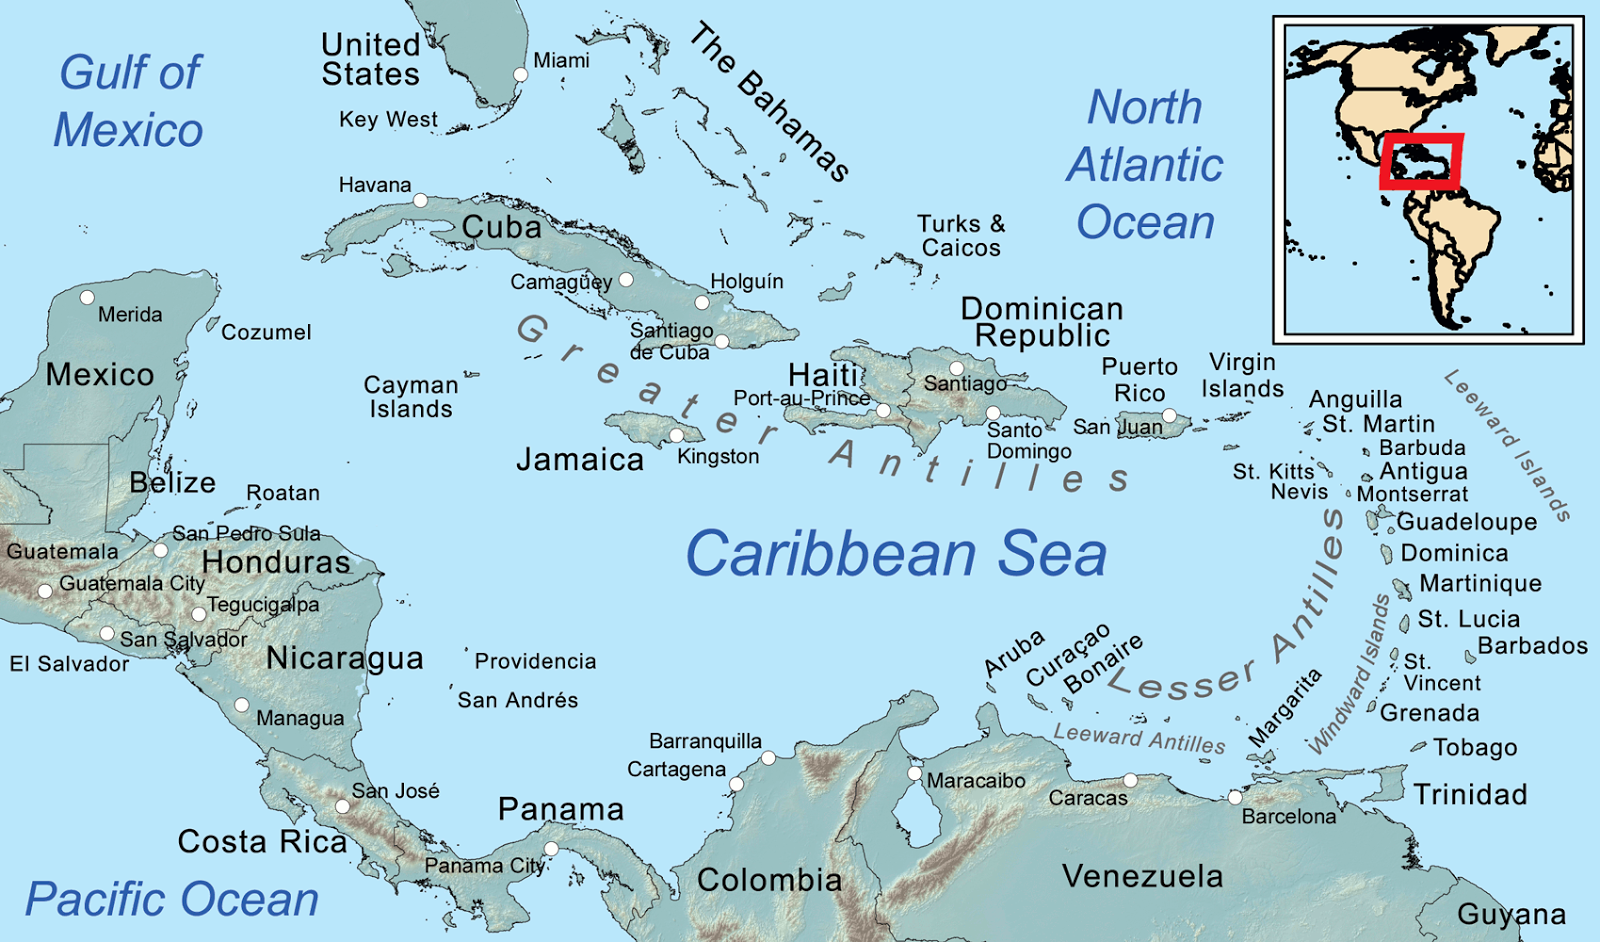 the caribbean central american basin a region of prime interest to a burgeoning u s imperialism at the end of the 19th century due to its industrial